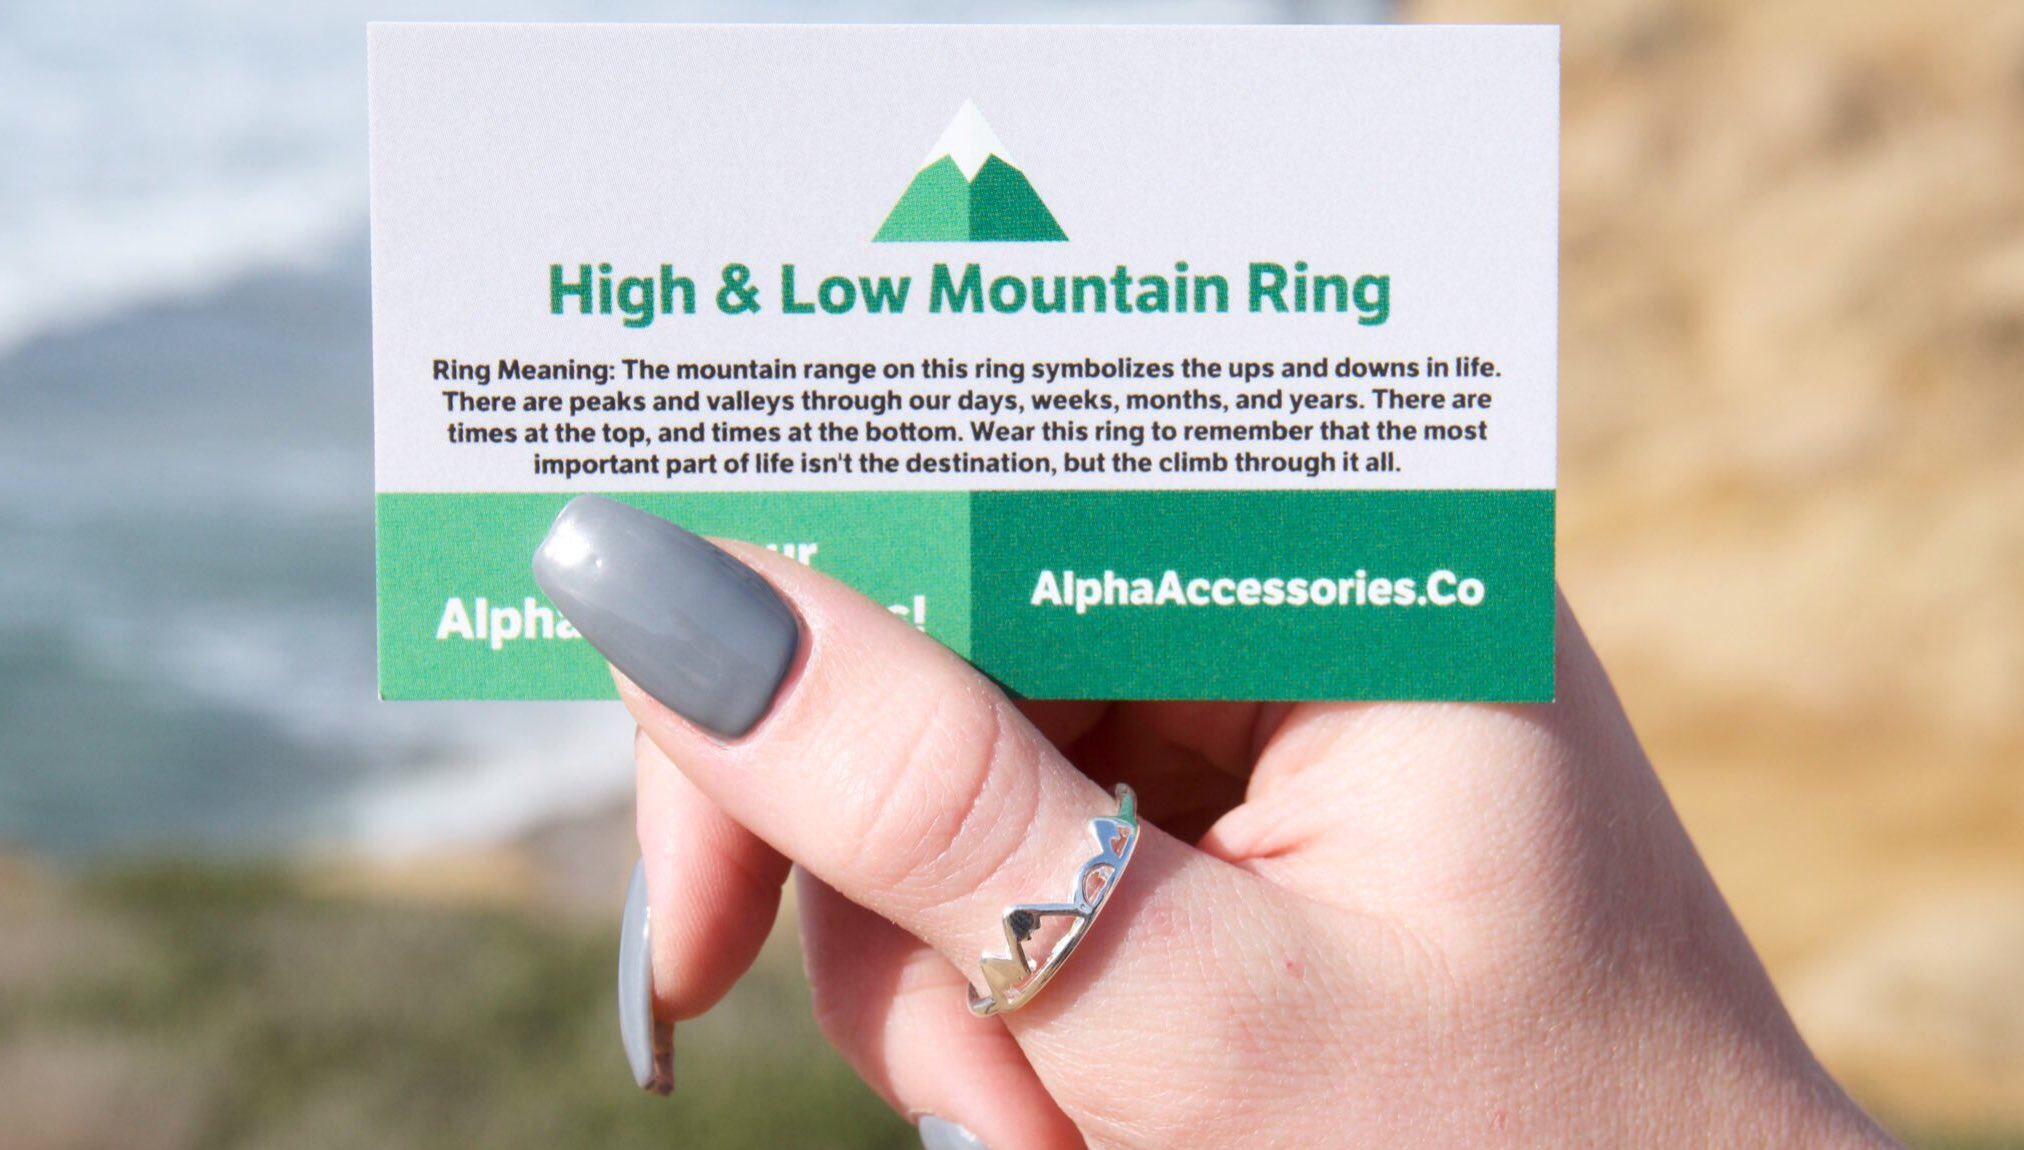 RT @BEFlTMOTlVATION: Loving my high & low mountain ring from https://t.co/6QN7pgspDQ https://t.co/GotL6MIEB9